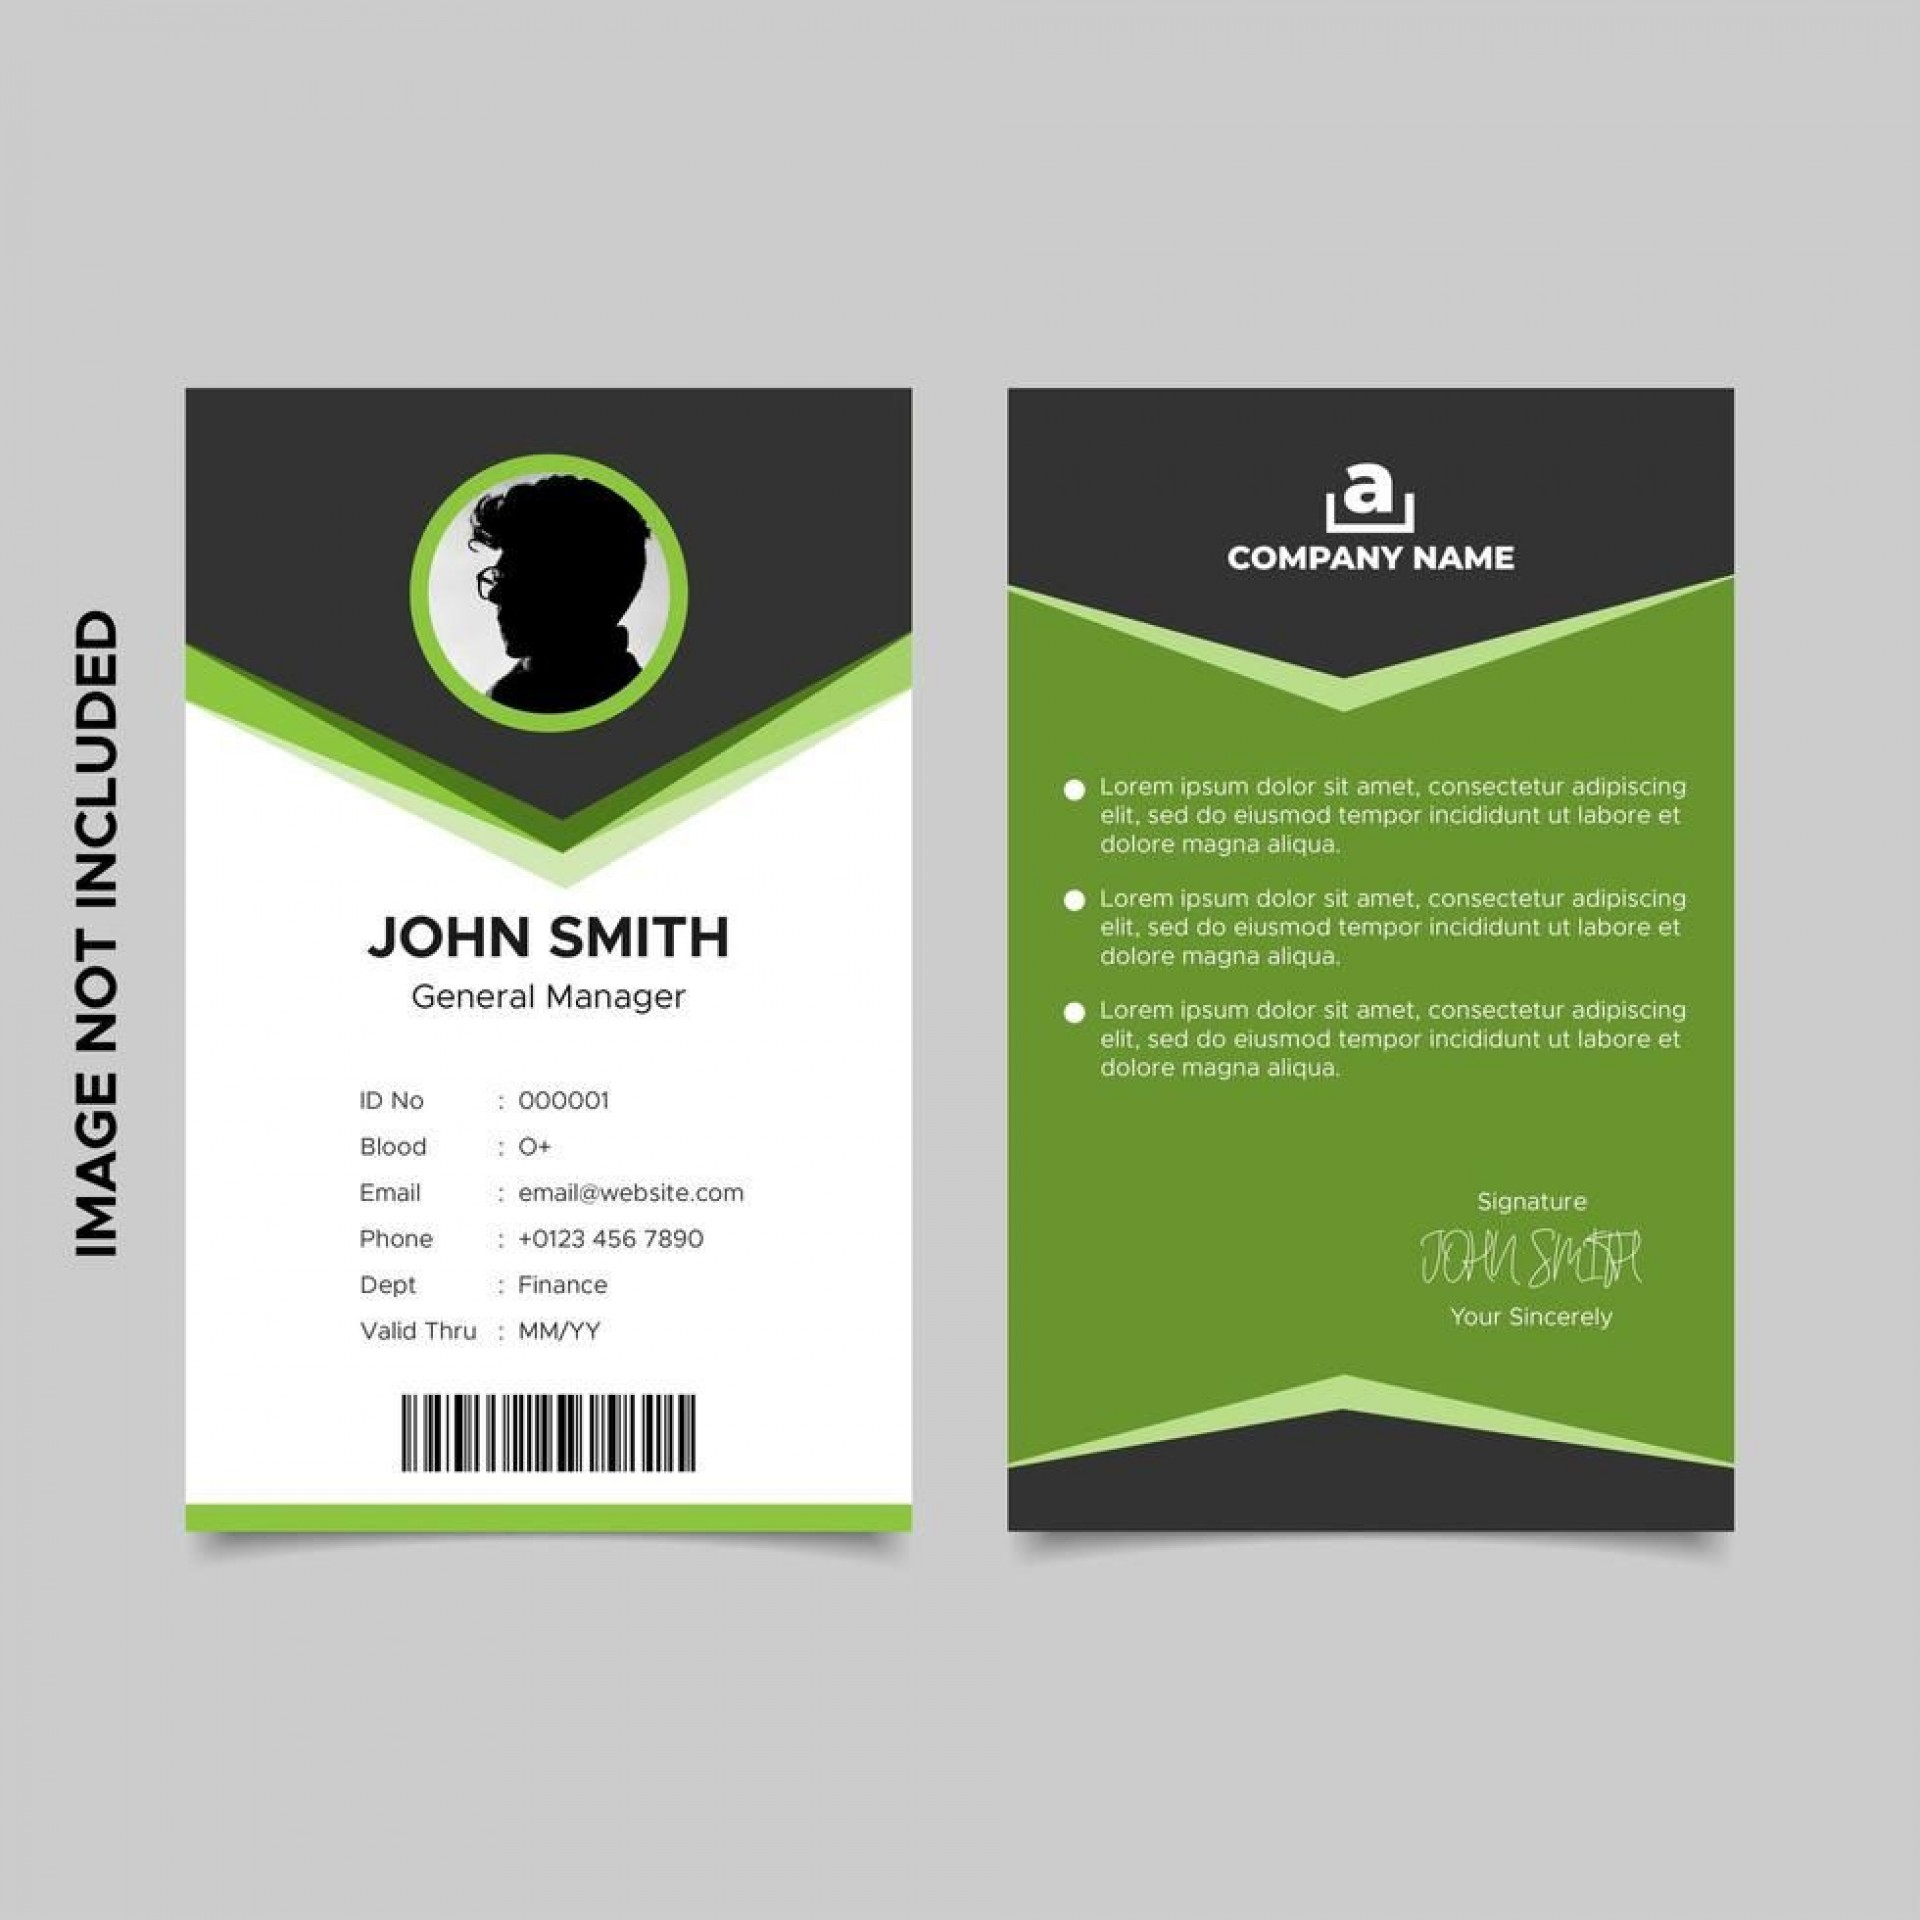 004 Breathtaking Id Card Template Free Download High Definition  Design Photoshop Identity Student Word1920